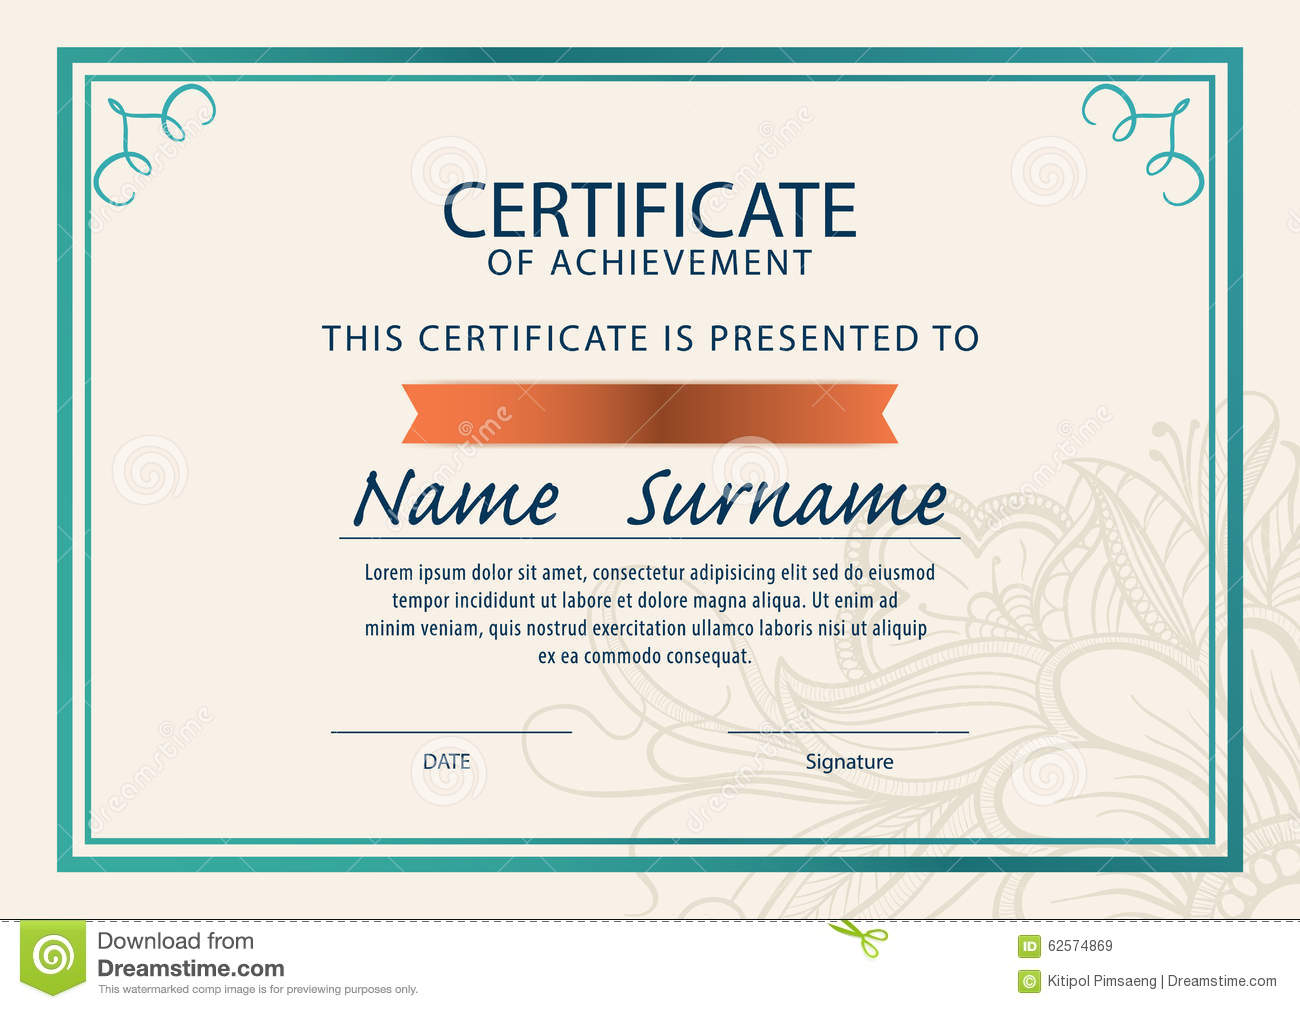 Certificate templatediplomaa4 size stock illustration certificate templatediplomaa4 size royalty free illustration yadclub Image collections